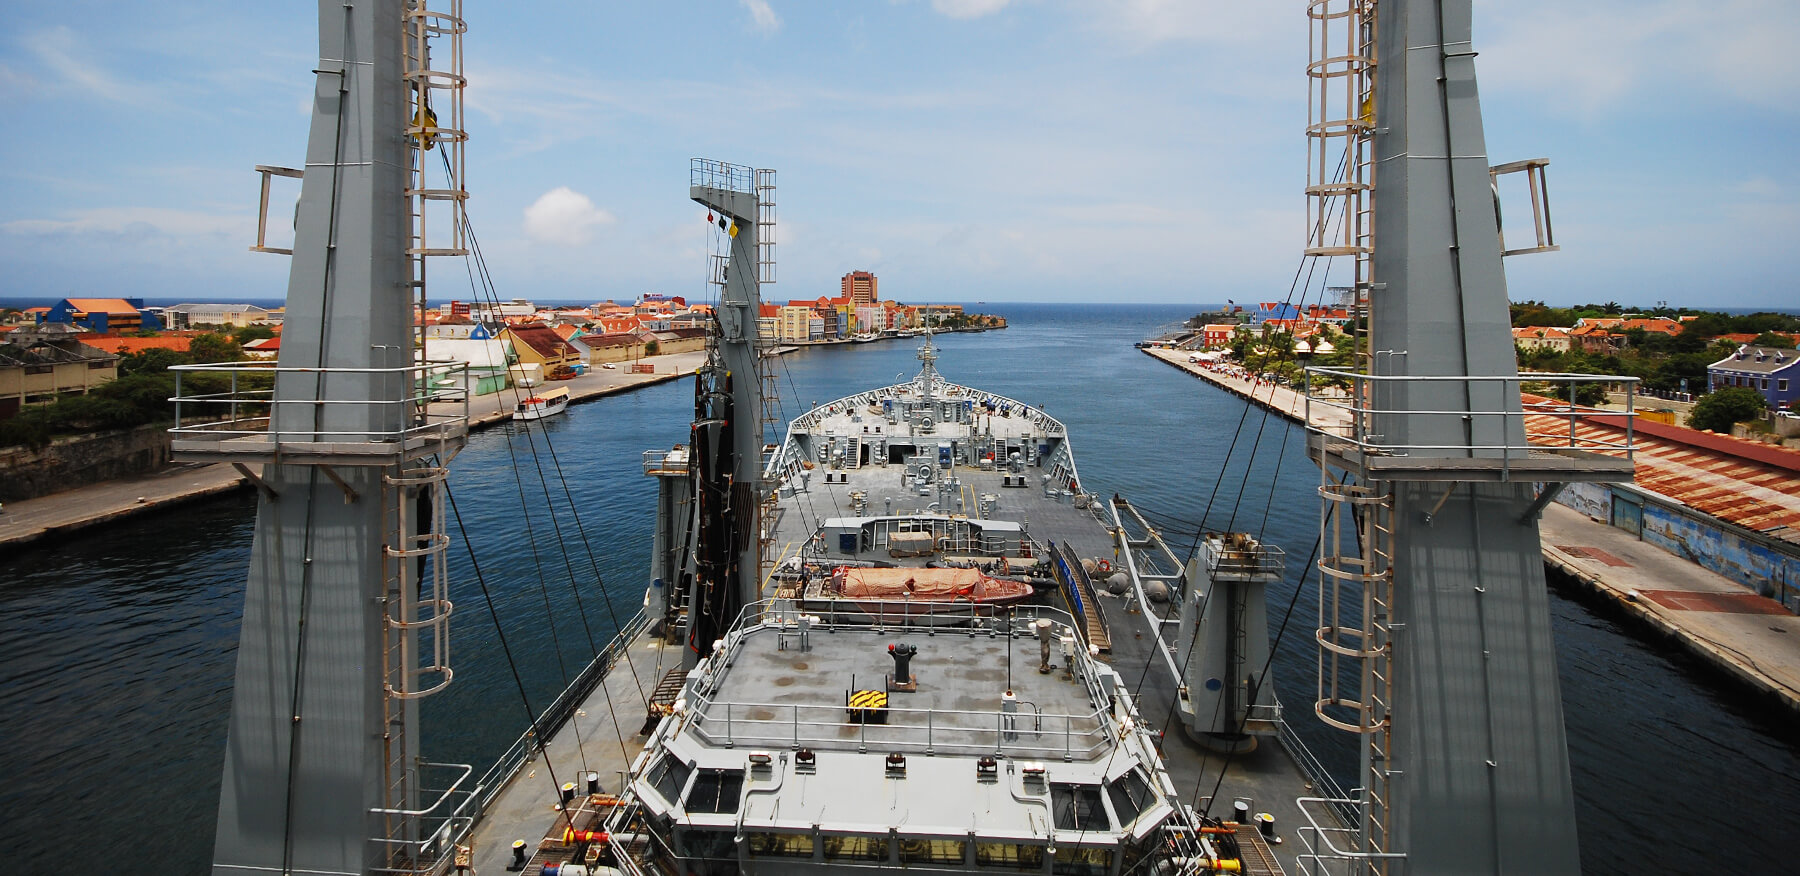 RFA Wave Ruler Curacao